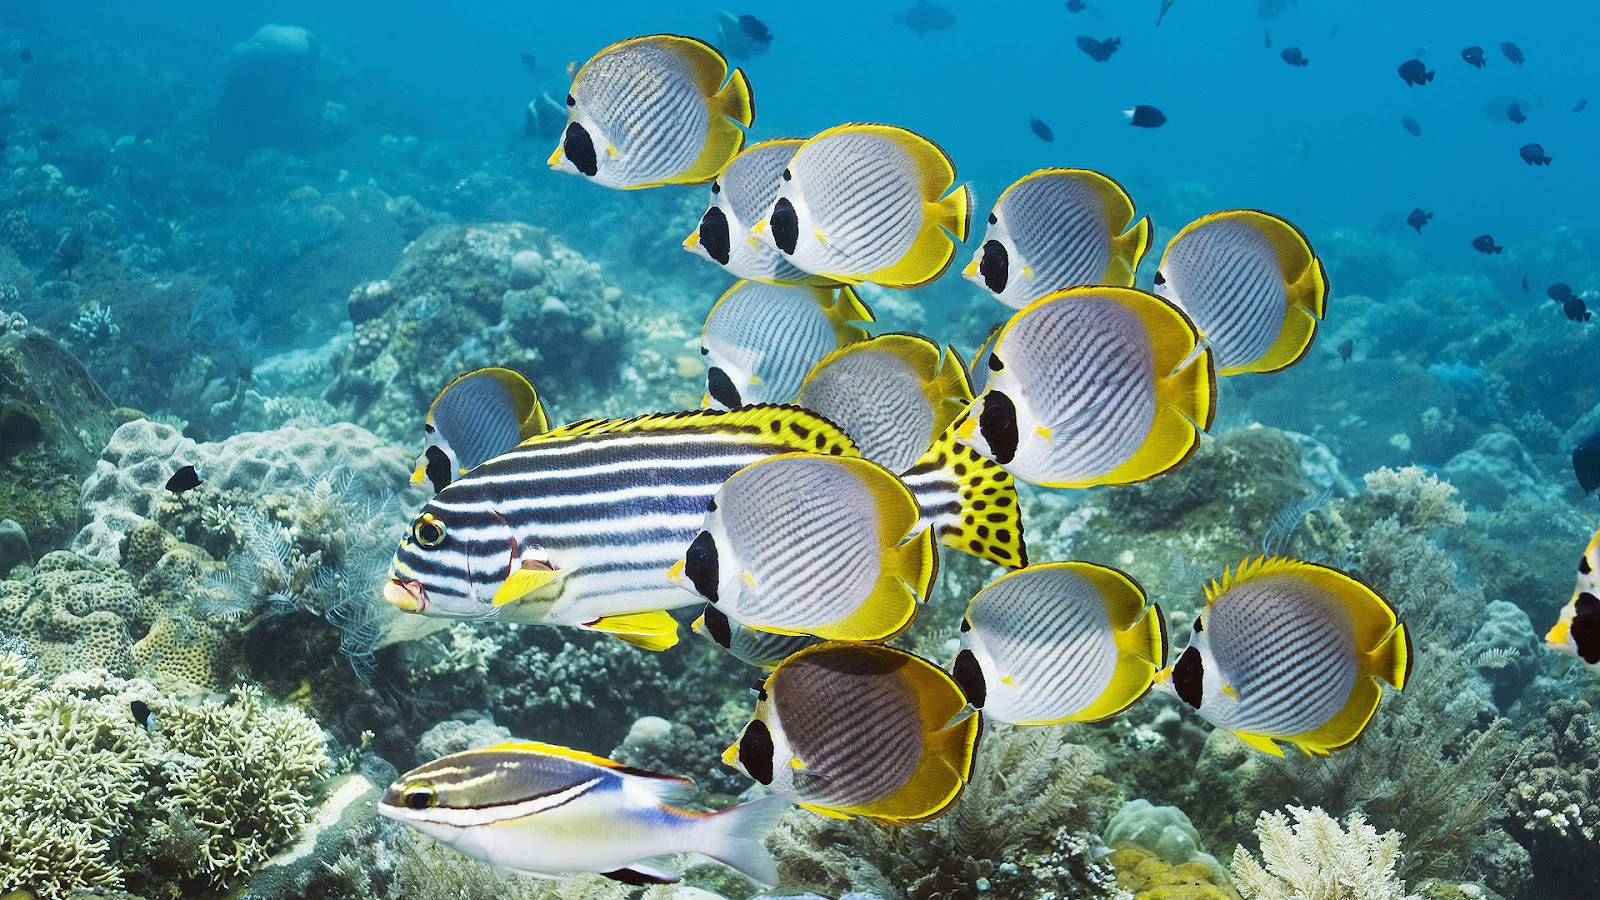 Free Download Wallpaper Tropical Fish Wallpapers Hd